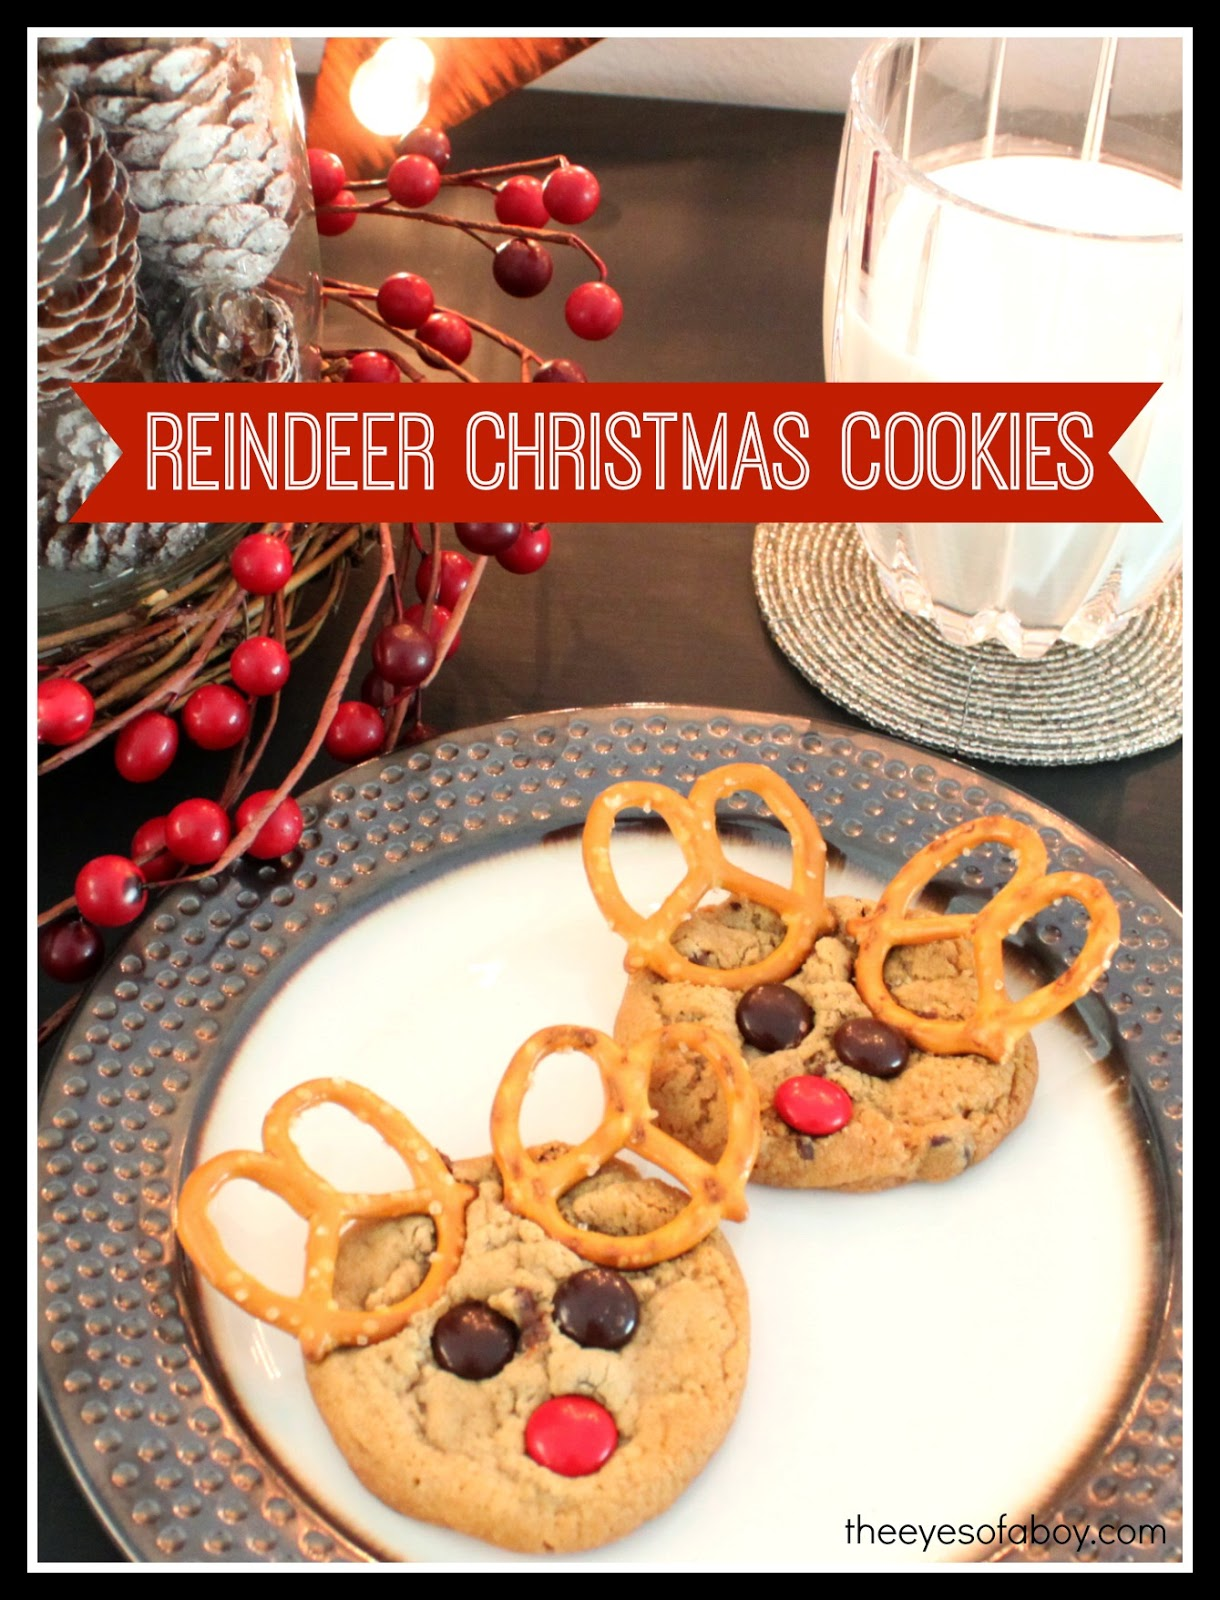 Adorable and easy to make Reindeer Christmas Cookies that both adults and children will love this holiday season